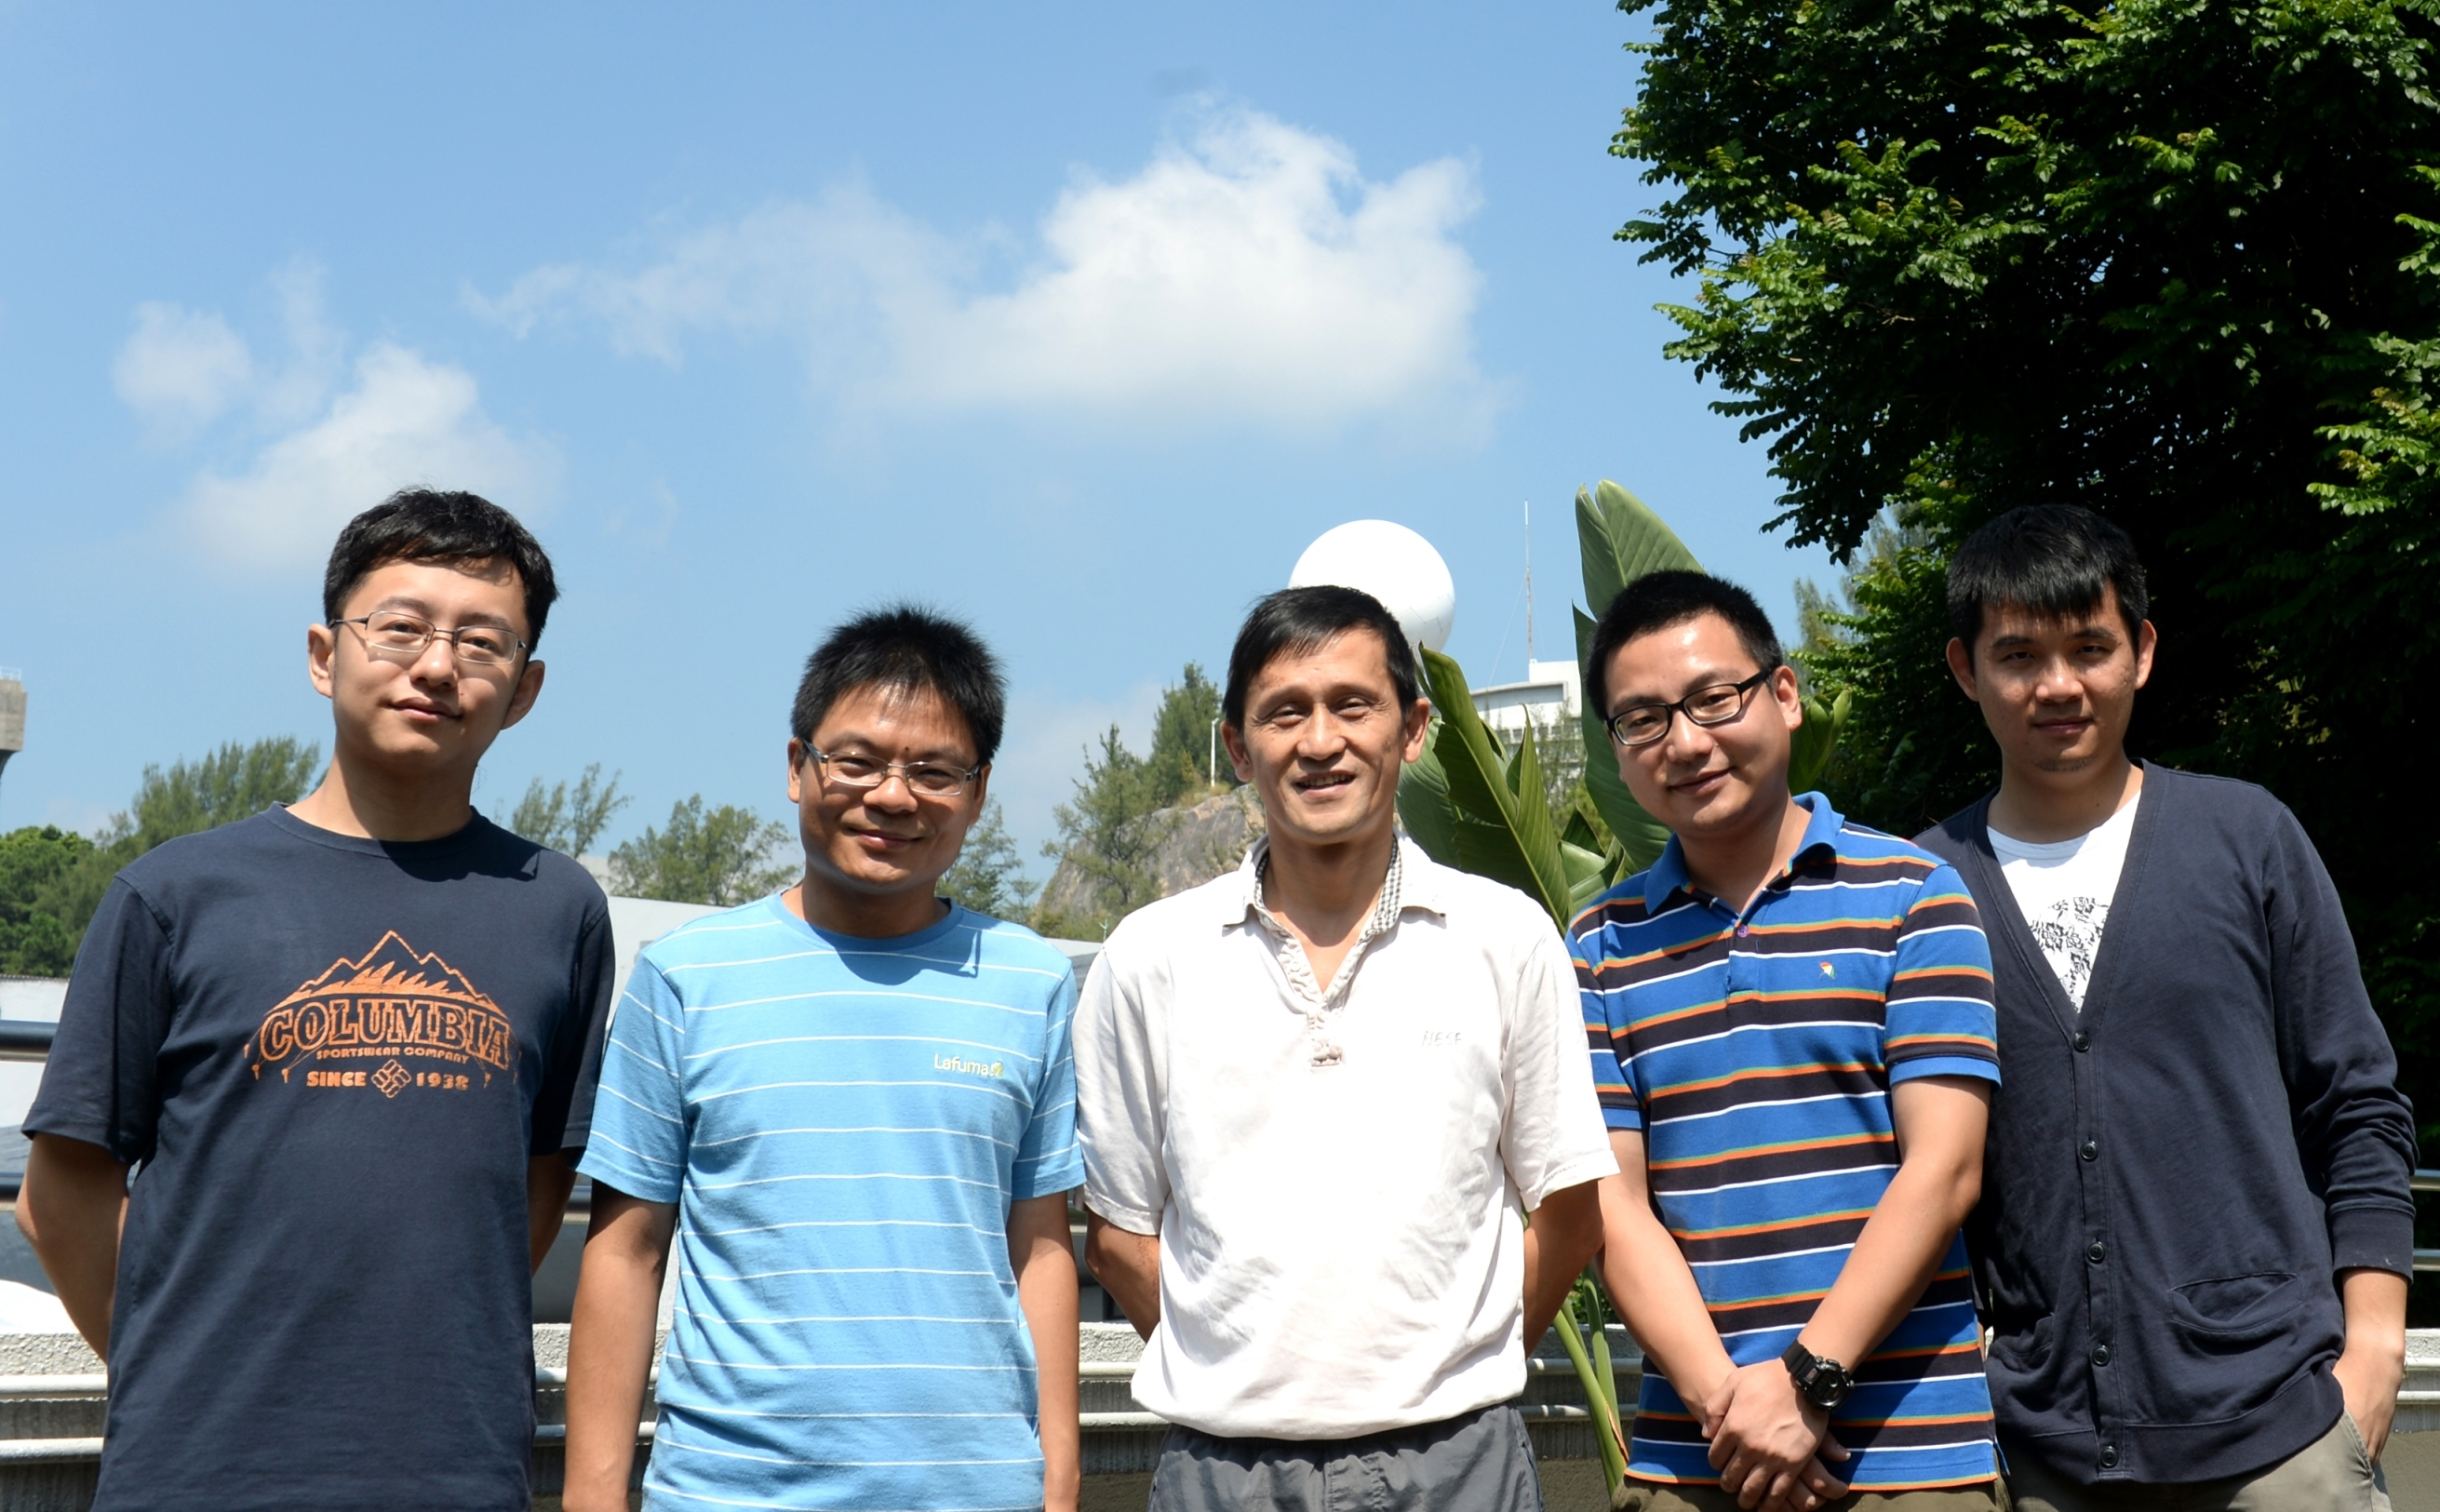 Prof. JIANG Liwen (middle) and his research team: (from left) Dr CUI Yong, Dr GAO Caiji, Dr LUO Ming and Dr ZENG Yonglun